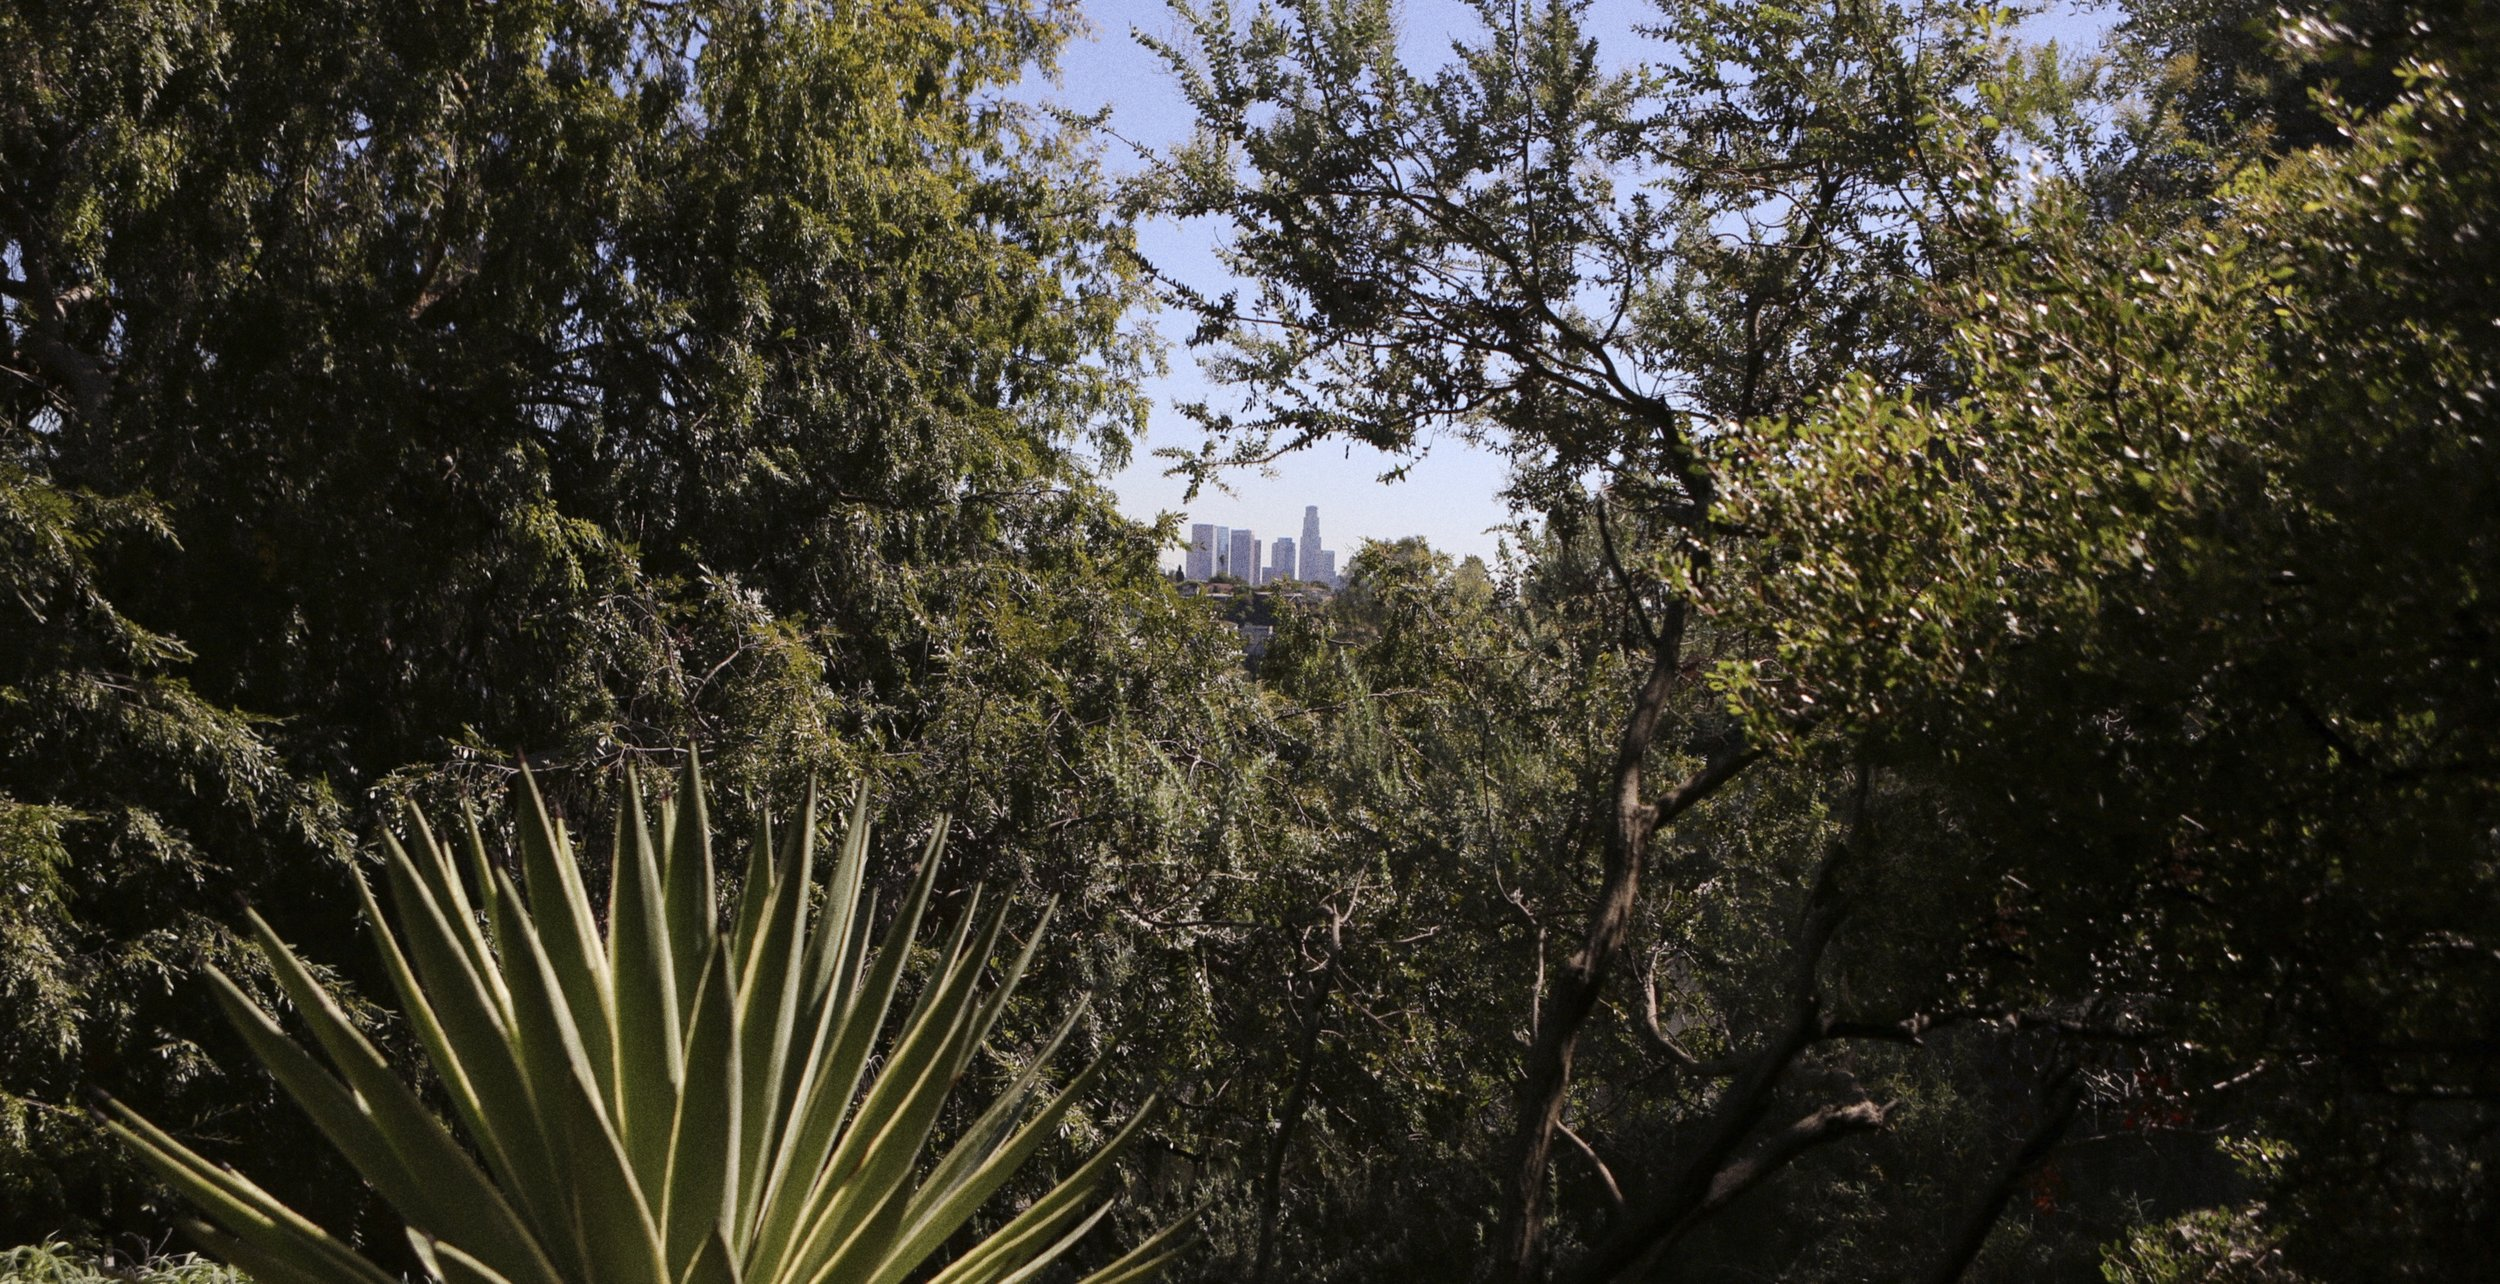 View over downtown LA from the garden. Image taken from the project ON PAPER #2, featuring the artist Miranda July. Photo: Andreas Omvik/Henrik Nielsen